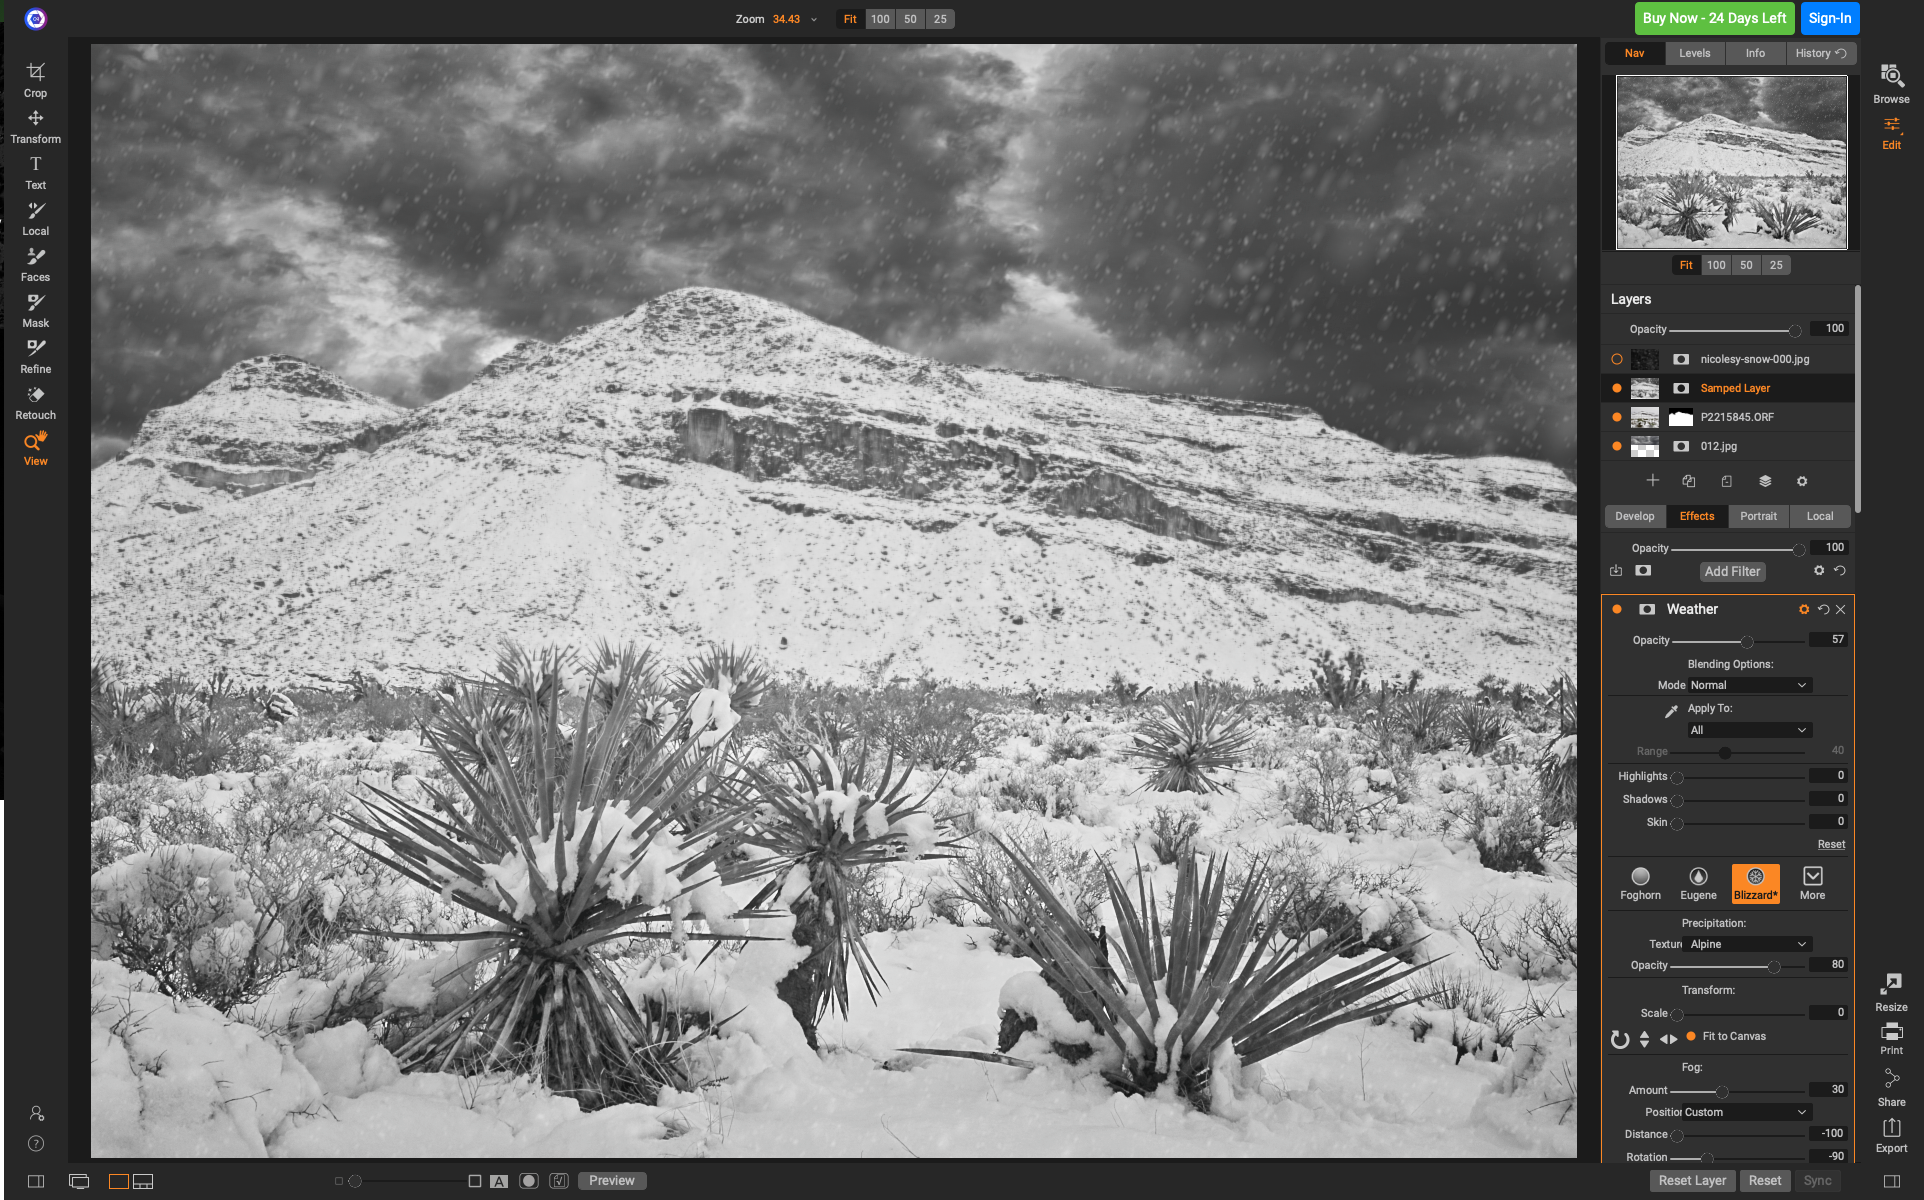 Snow in the desert? Yes, it really did snow this year, but when I was out shooting the flakes had stopped. Fortunately, with the new Weather Effect itit takes just a couple of clicks to add them back in.